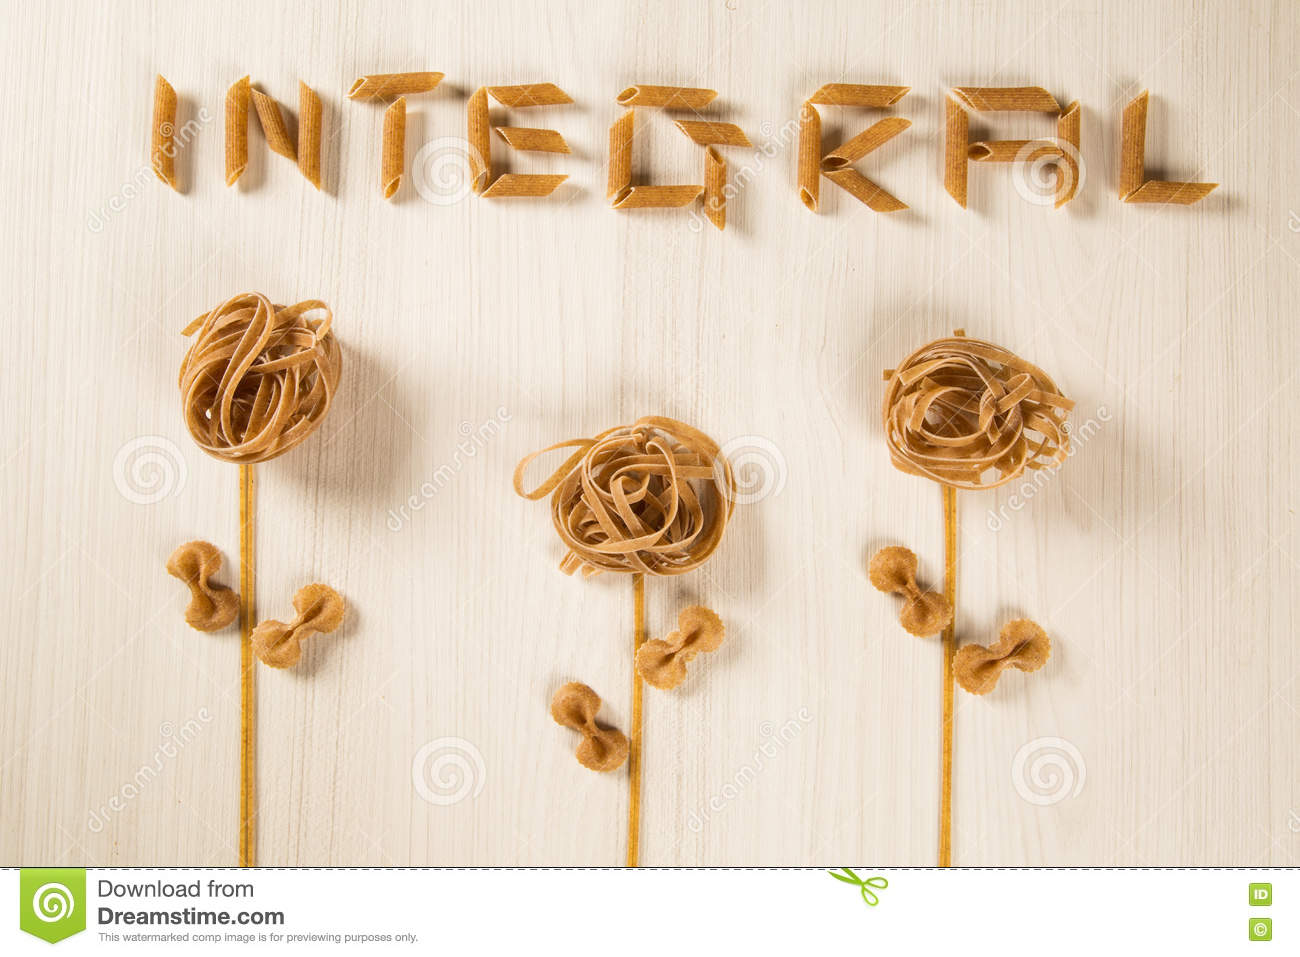 Whole-shaped integral pasta with flowers on a white wooden table